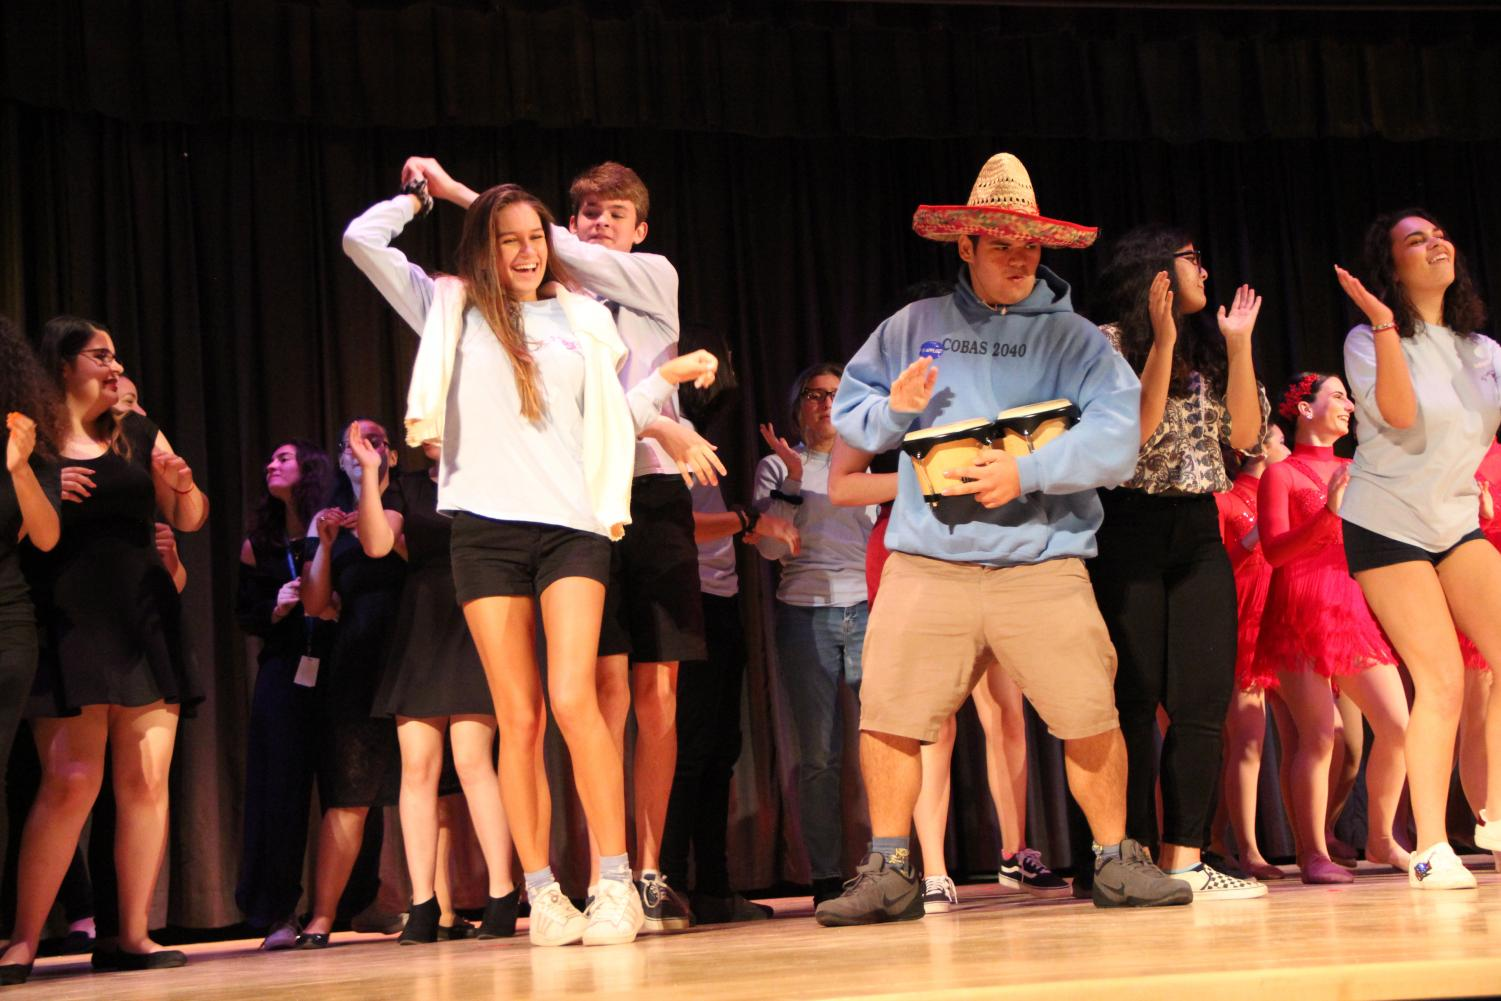 All the participants showed their Hispanic pride and joined Batlle during her last performance.